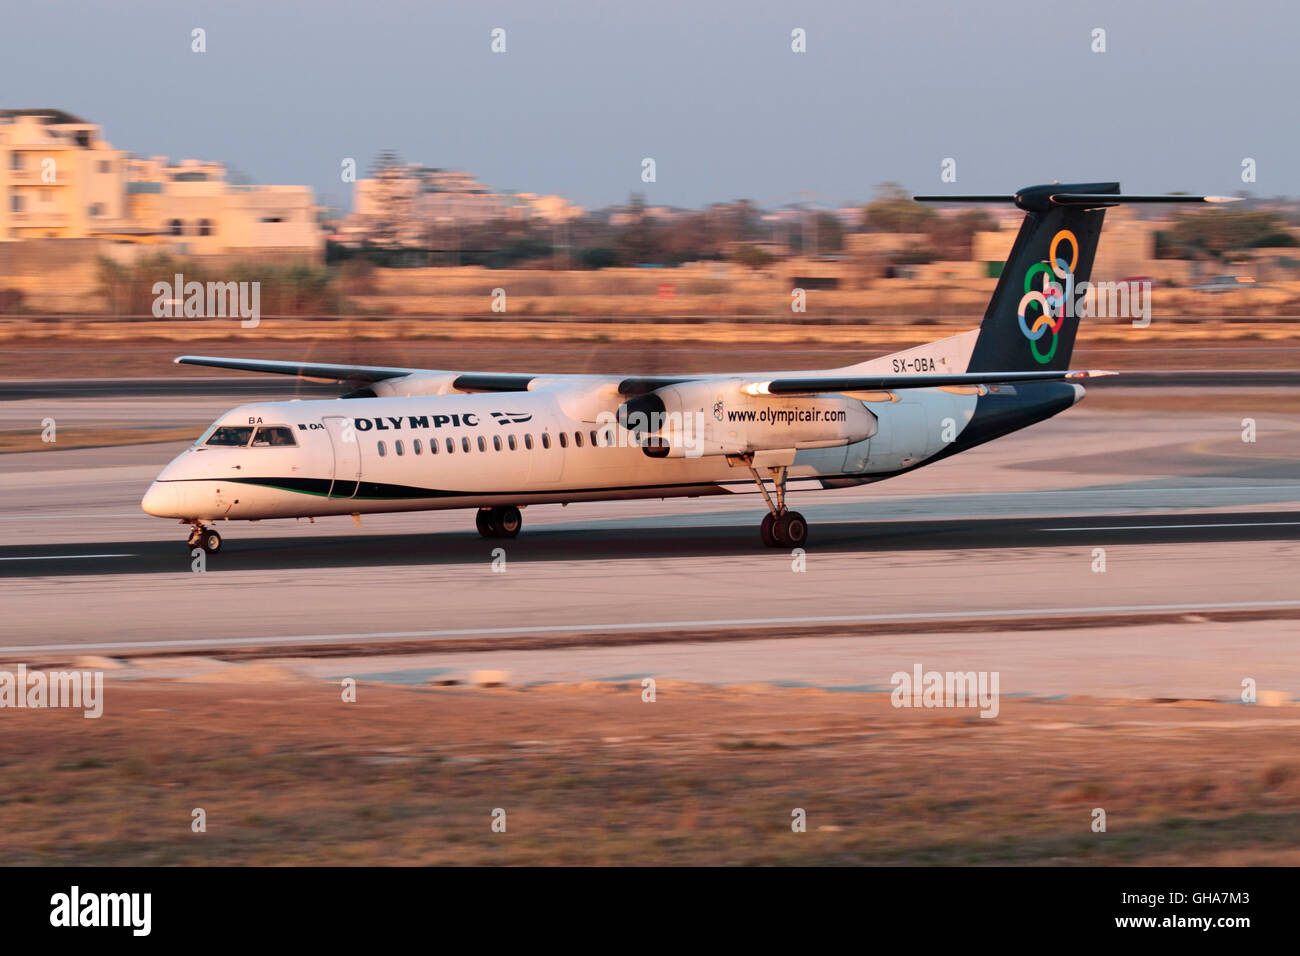 Olympic Air Bombardier Dash 8-Q400 turboprop plane taking off from Malta at sunset. Slow shutter speed used for - Stock Image